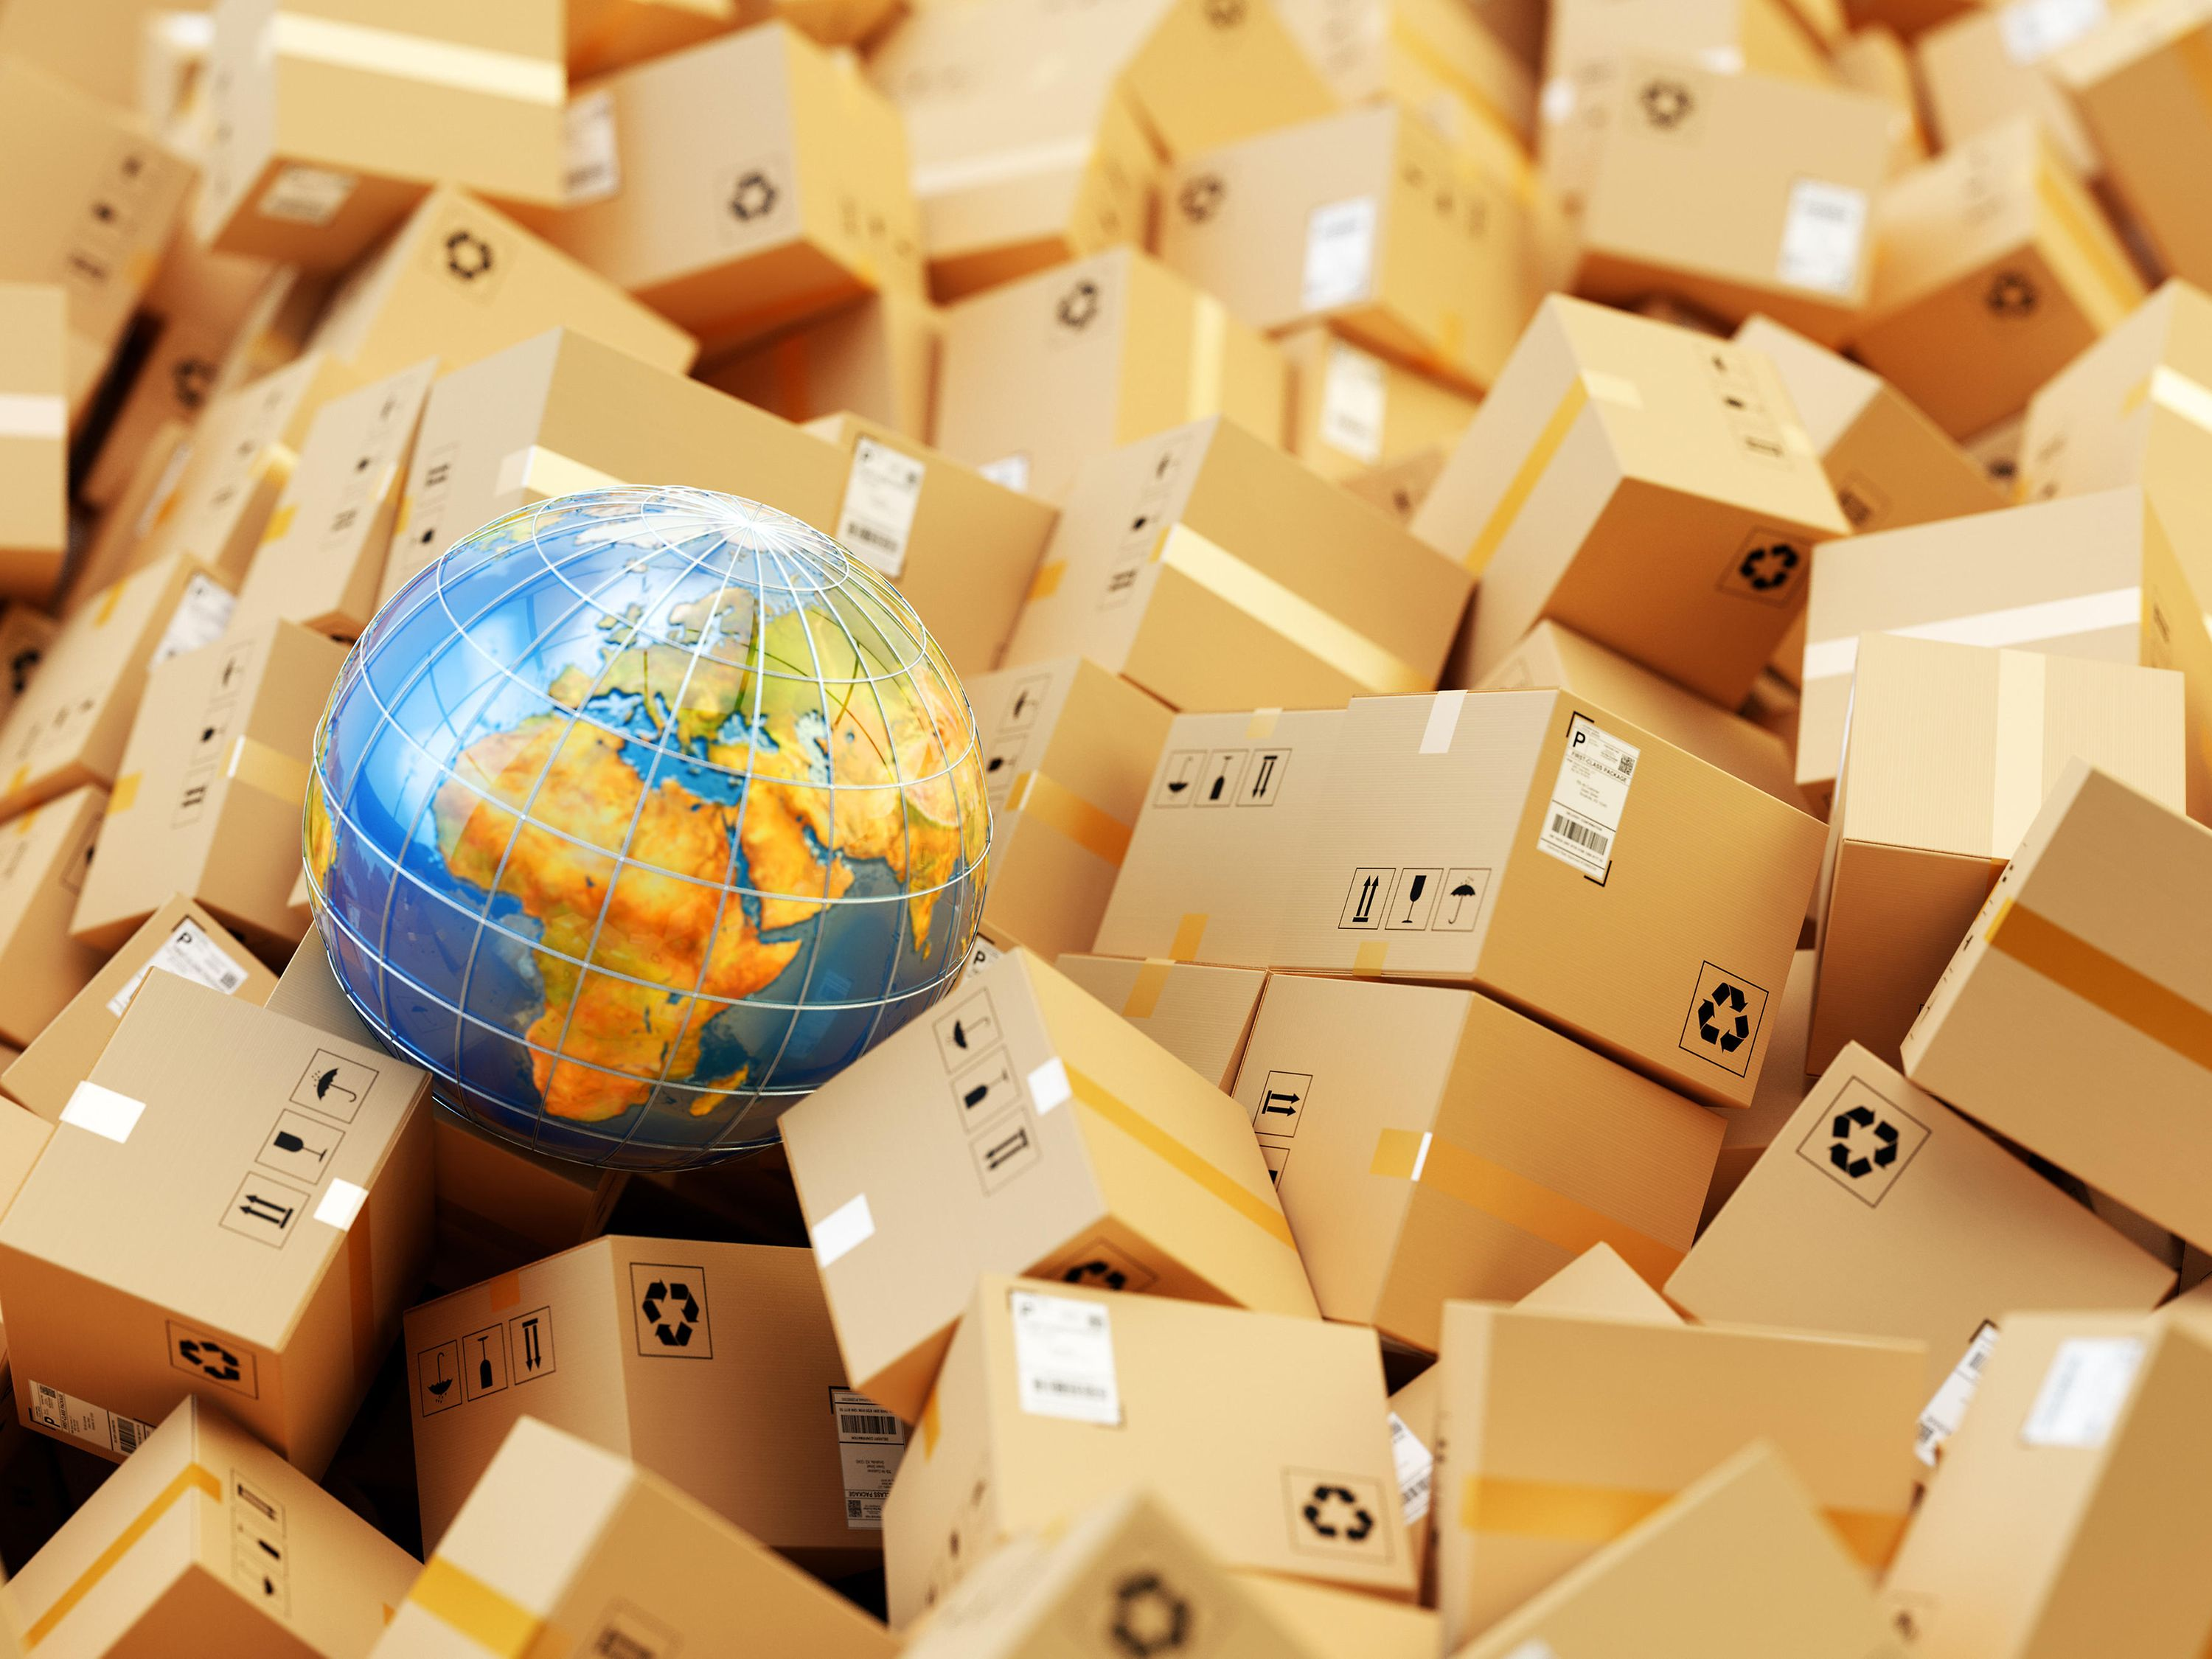 A globe in between a bunch of parcels